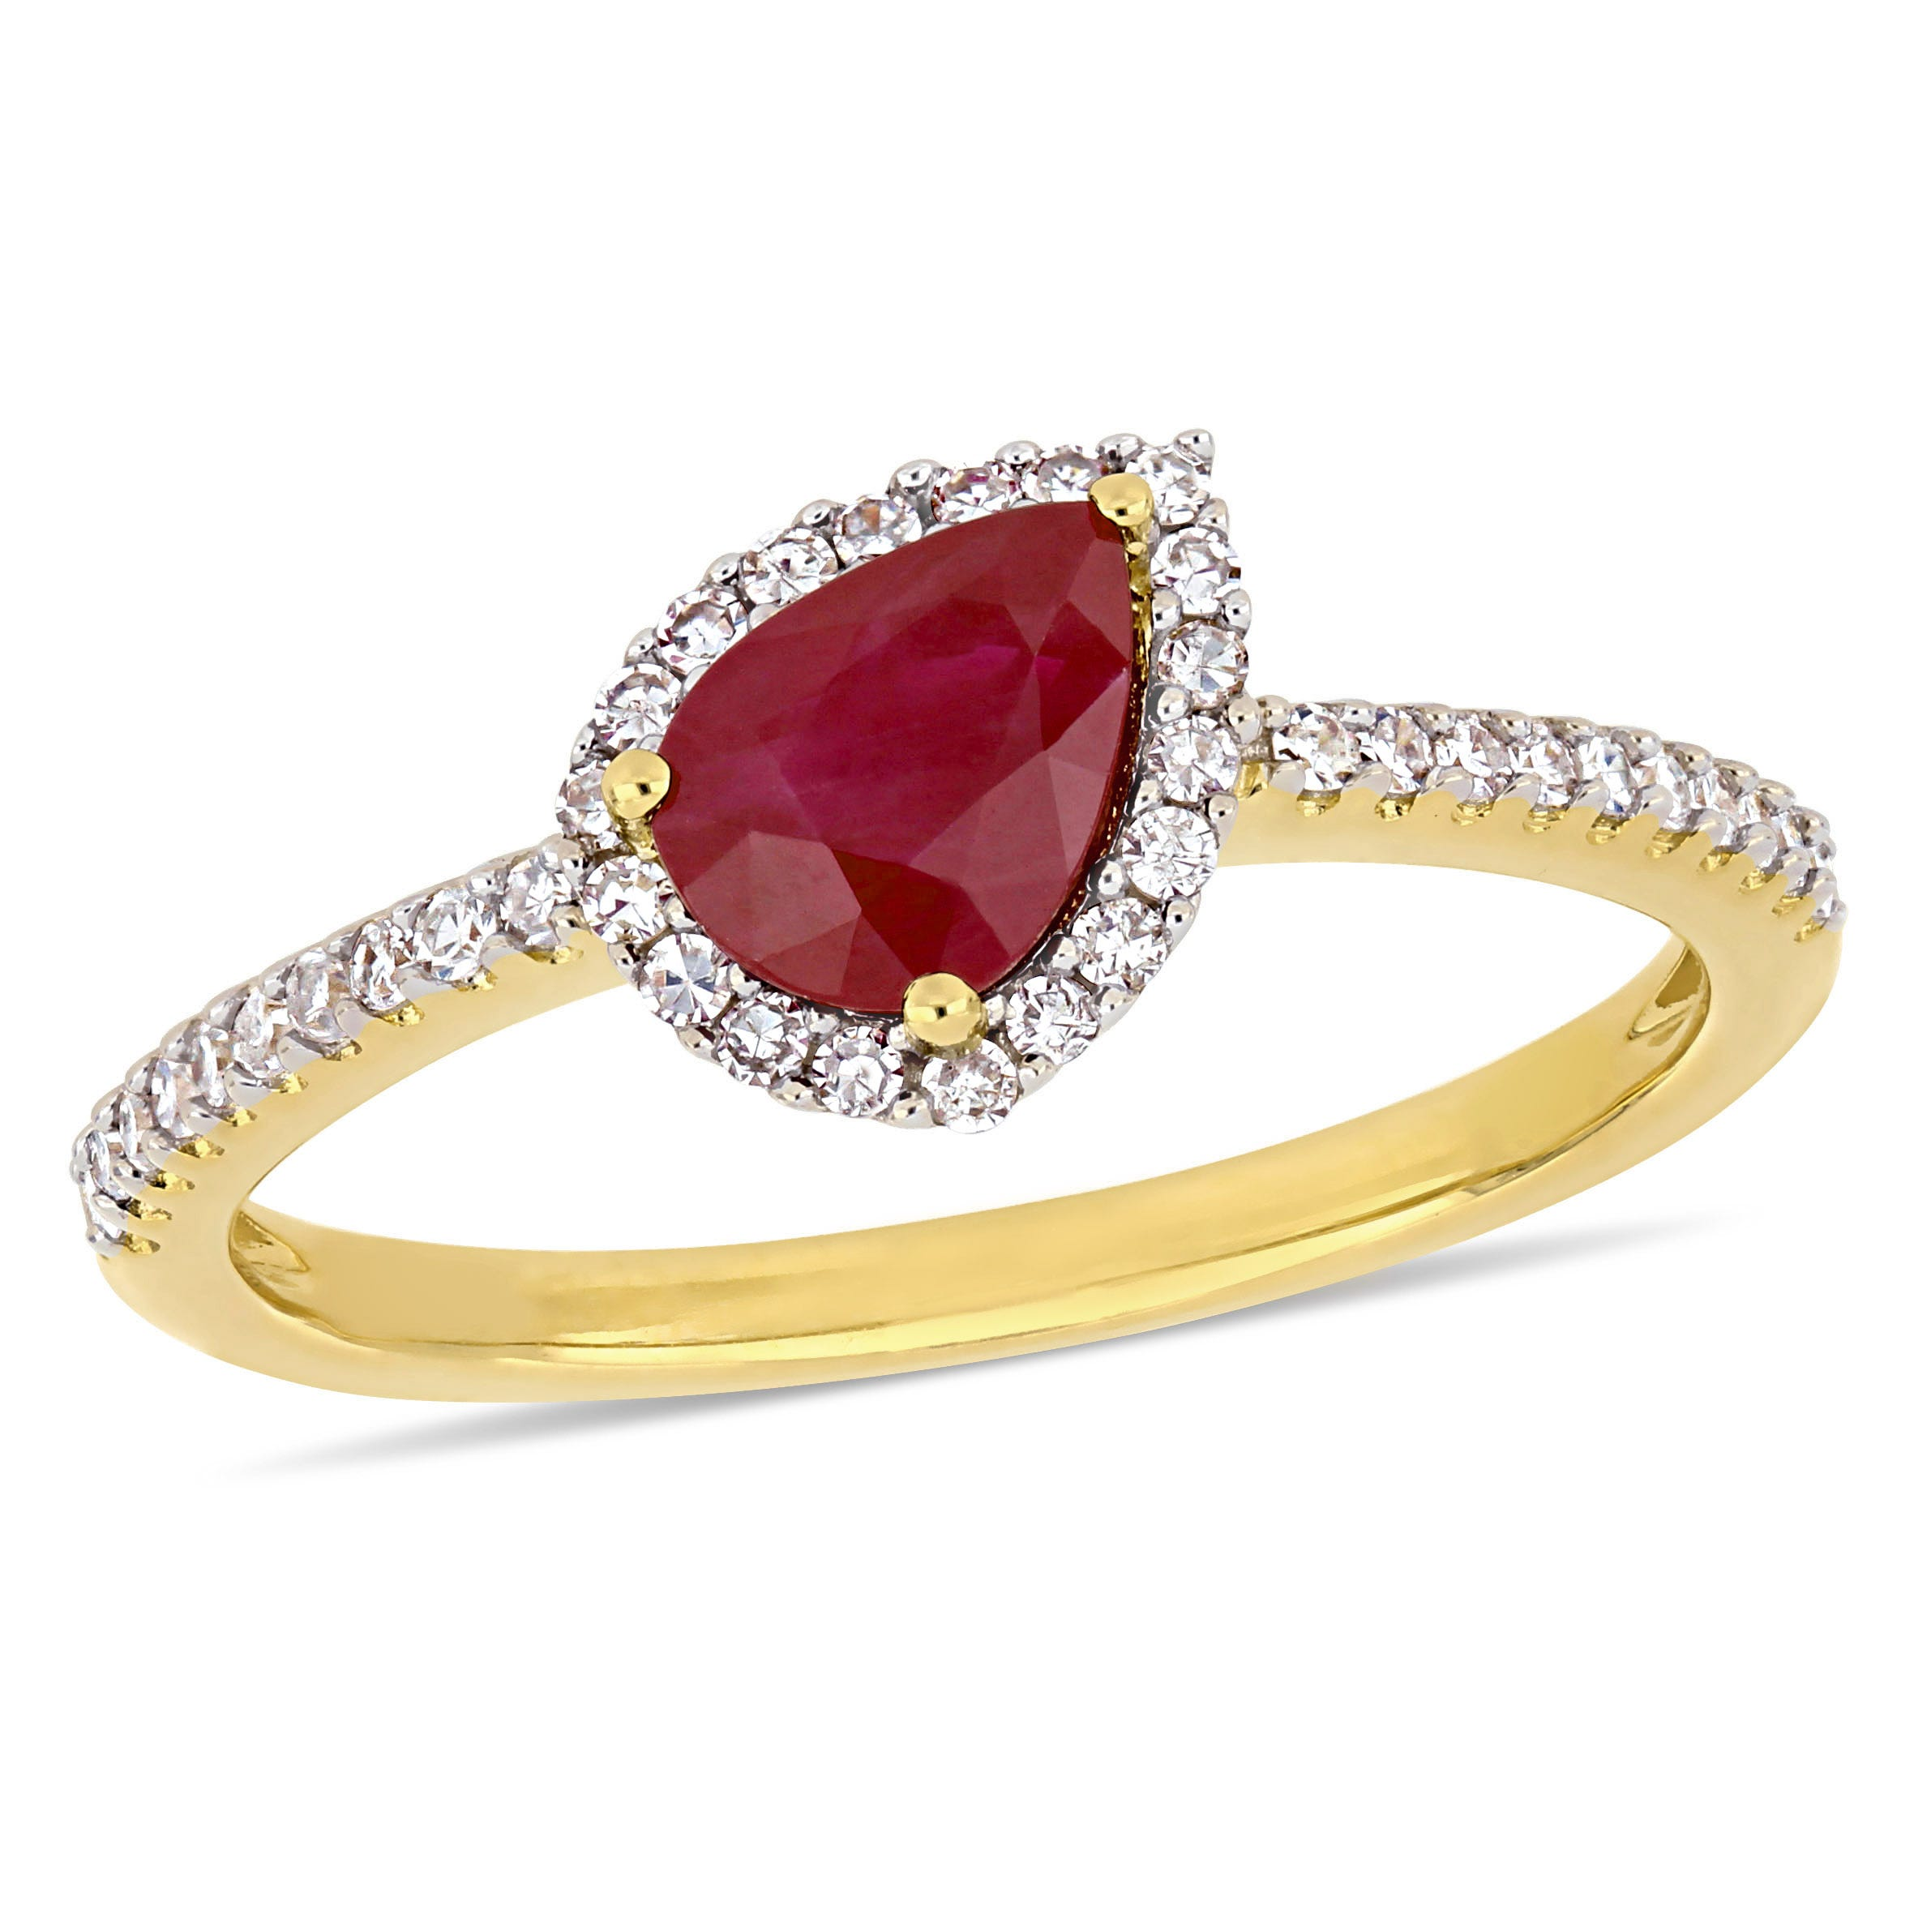 Ruby & Diamond Pear Shaped Ring in 14k Yellow Gold